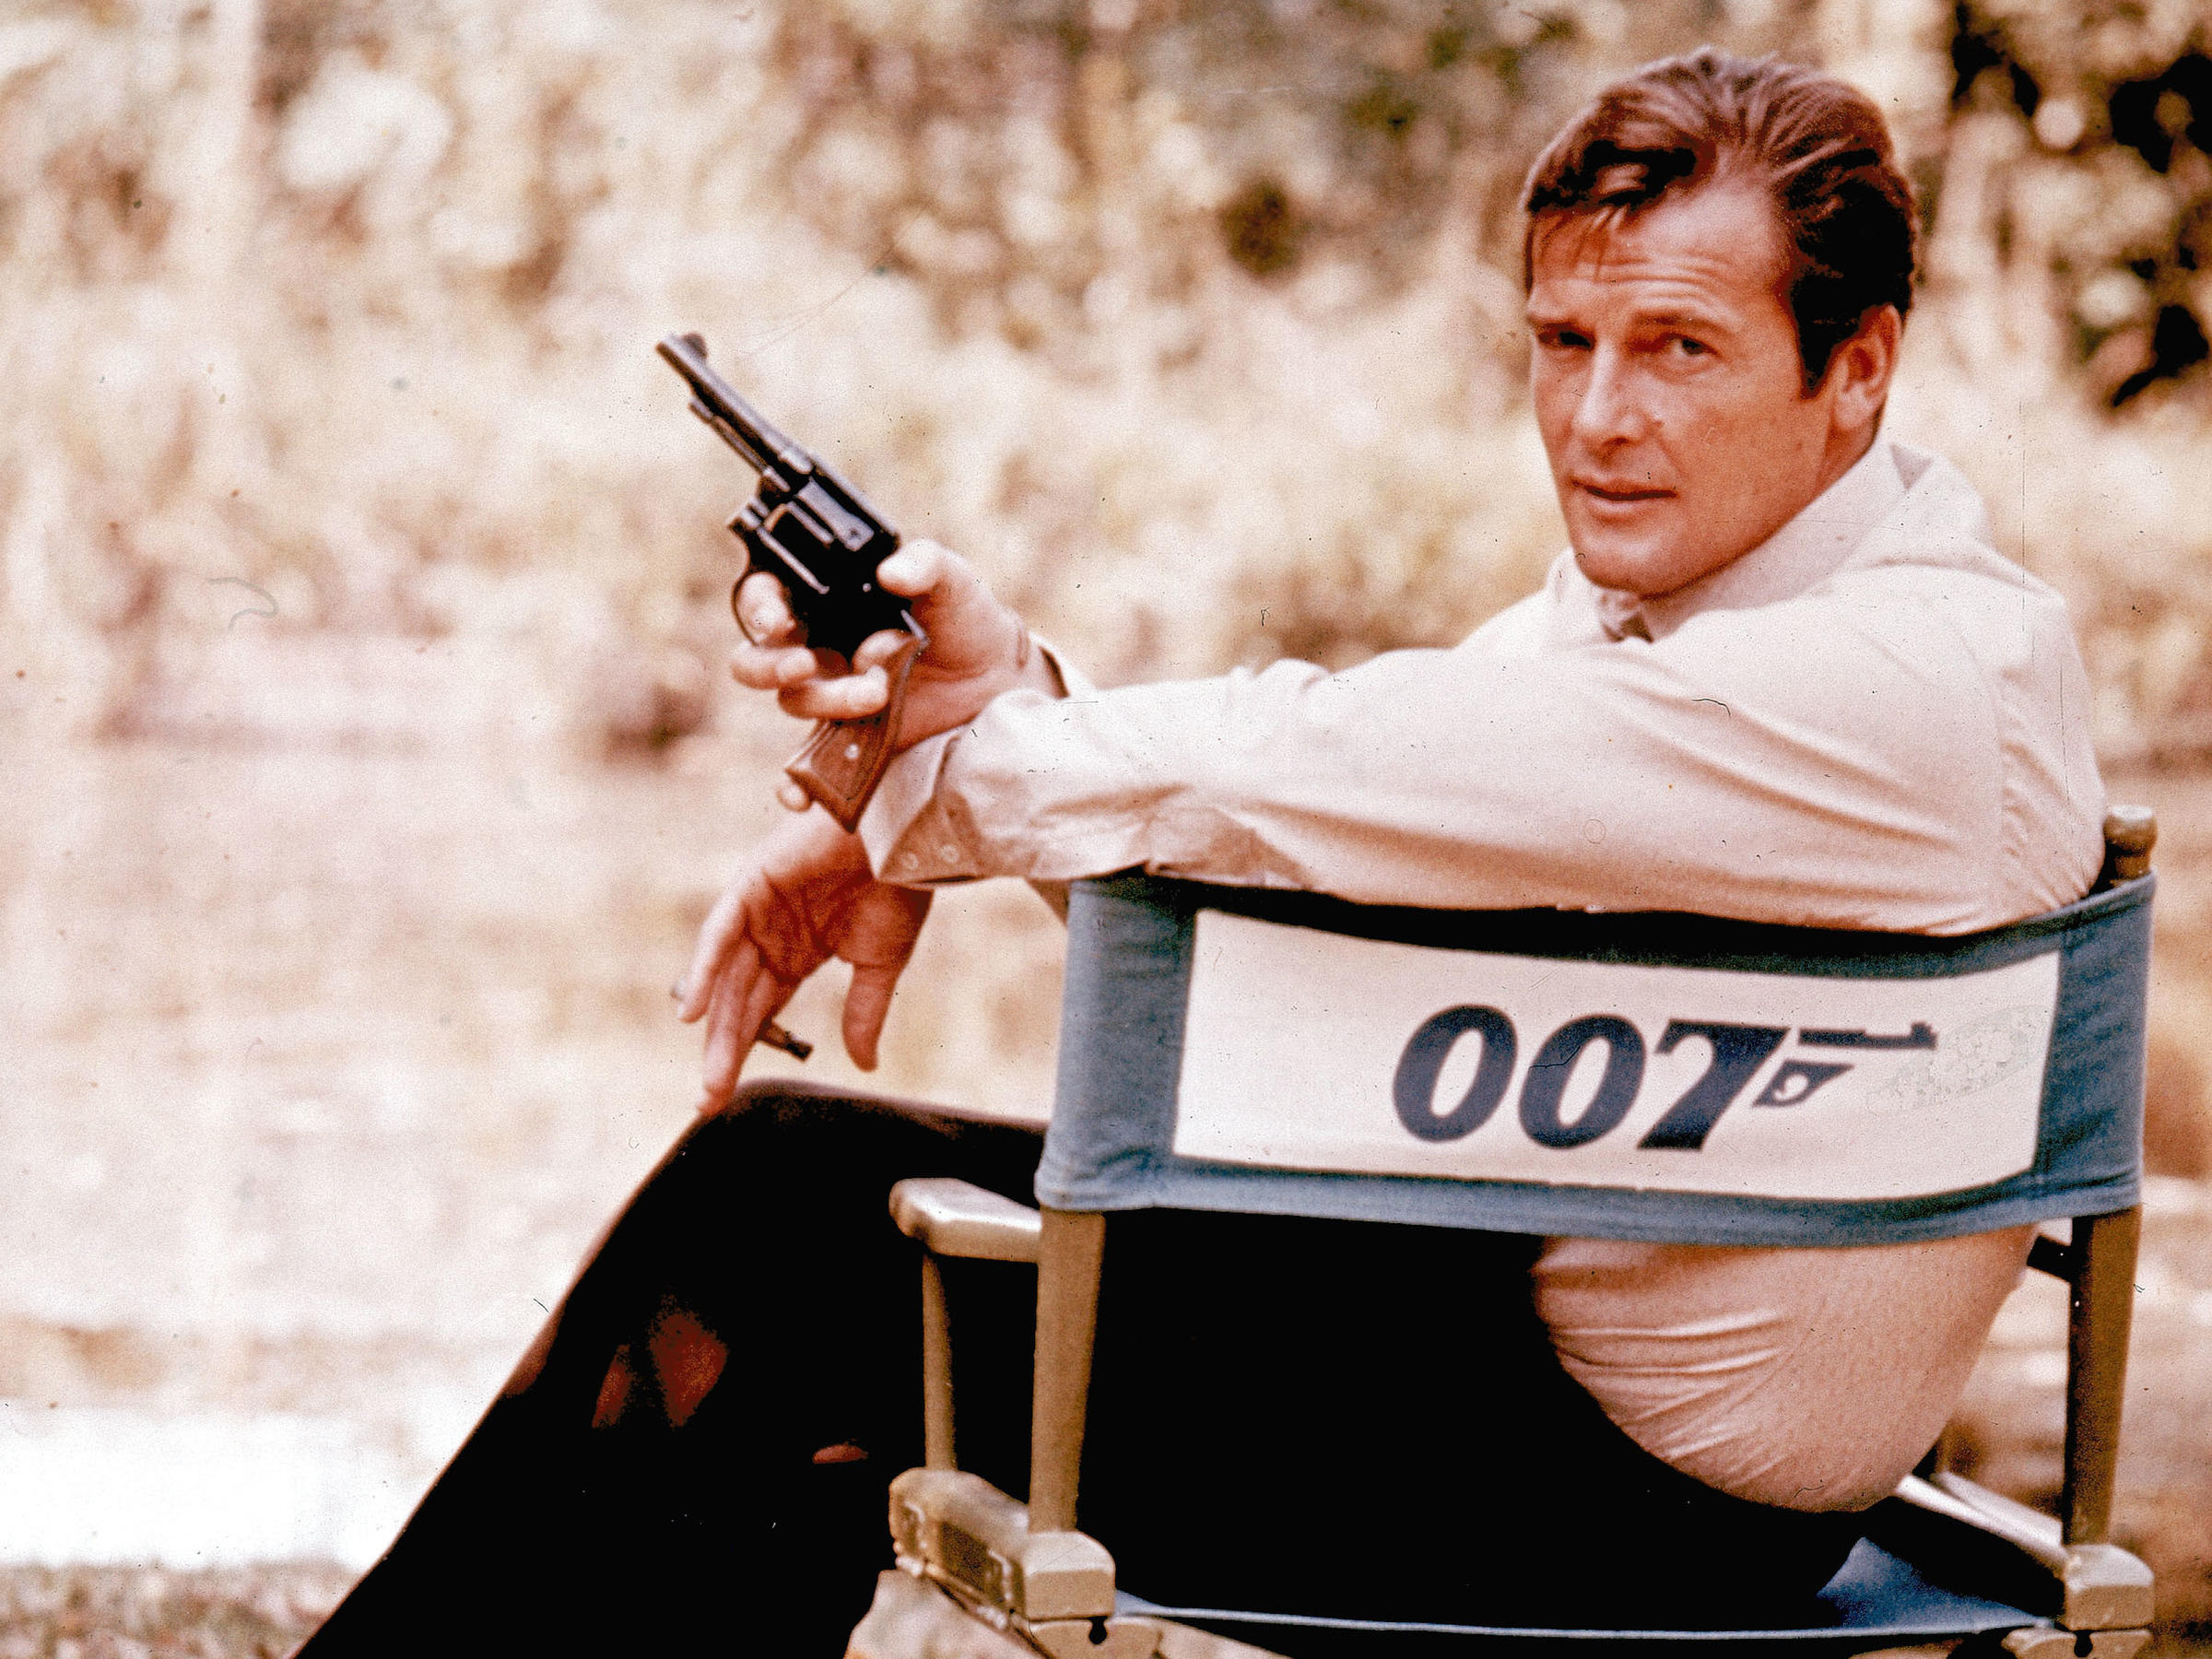 James Bond Star - Roger Moore.jpg